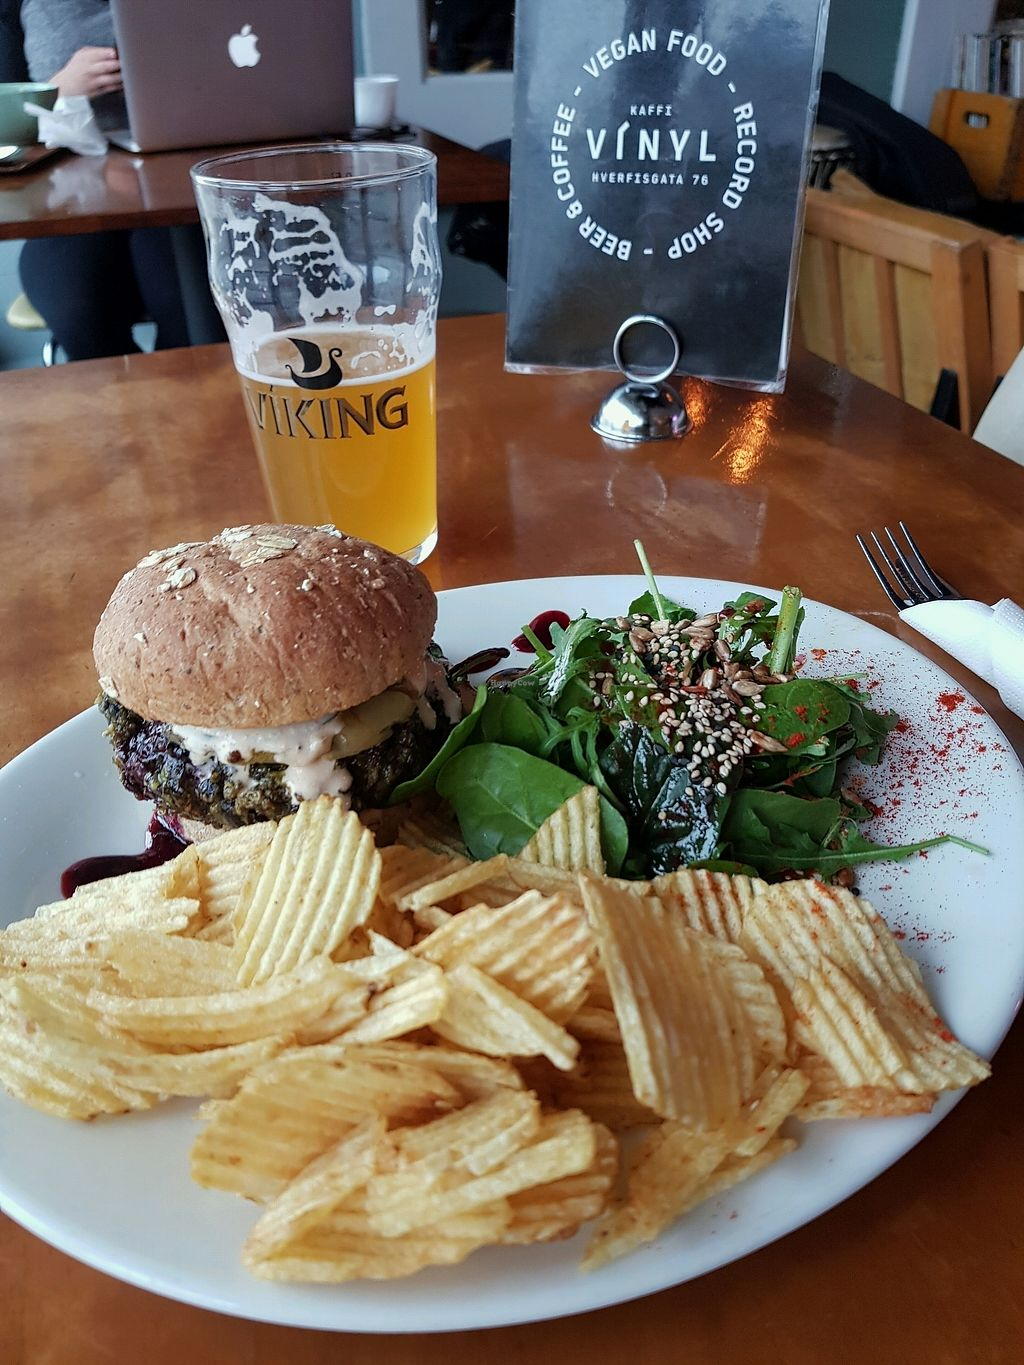 """Photo of Kaffi Vinyl  by <a href=""""/members/profile/Jan045"""">Jan045</a> <br/>bean and quinoa burger <br/> March 18, 2018  - <a href='/contact/abuse/image/68917/372473'>Report</a>"""